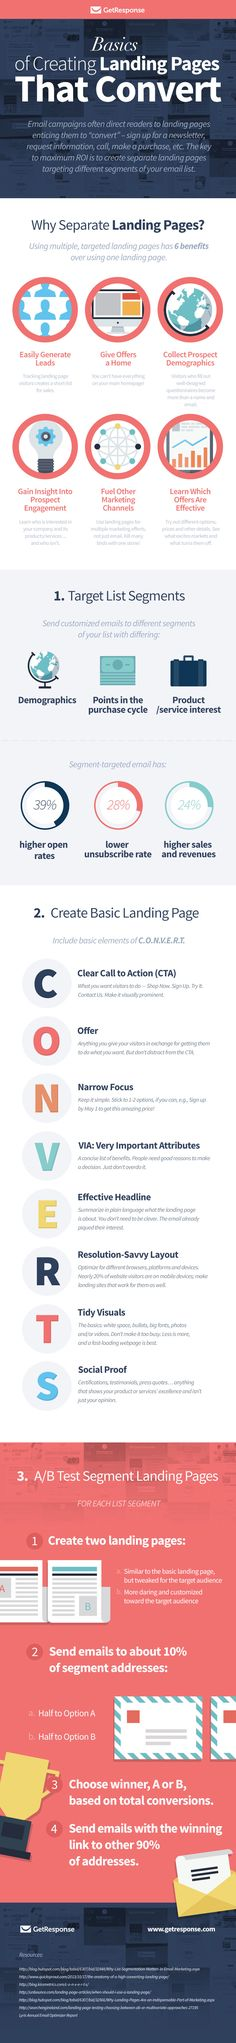 Send Your Email Subscribers to Different Landing Pages [Infographic] | http://socialmouths.com/blog/2014/05/27/landing-pages-infographic/